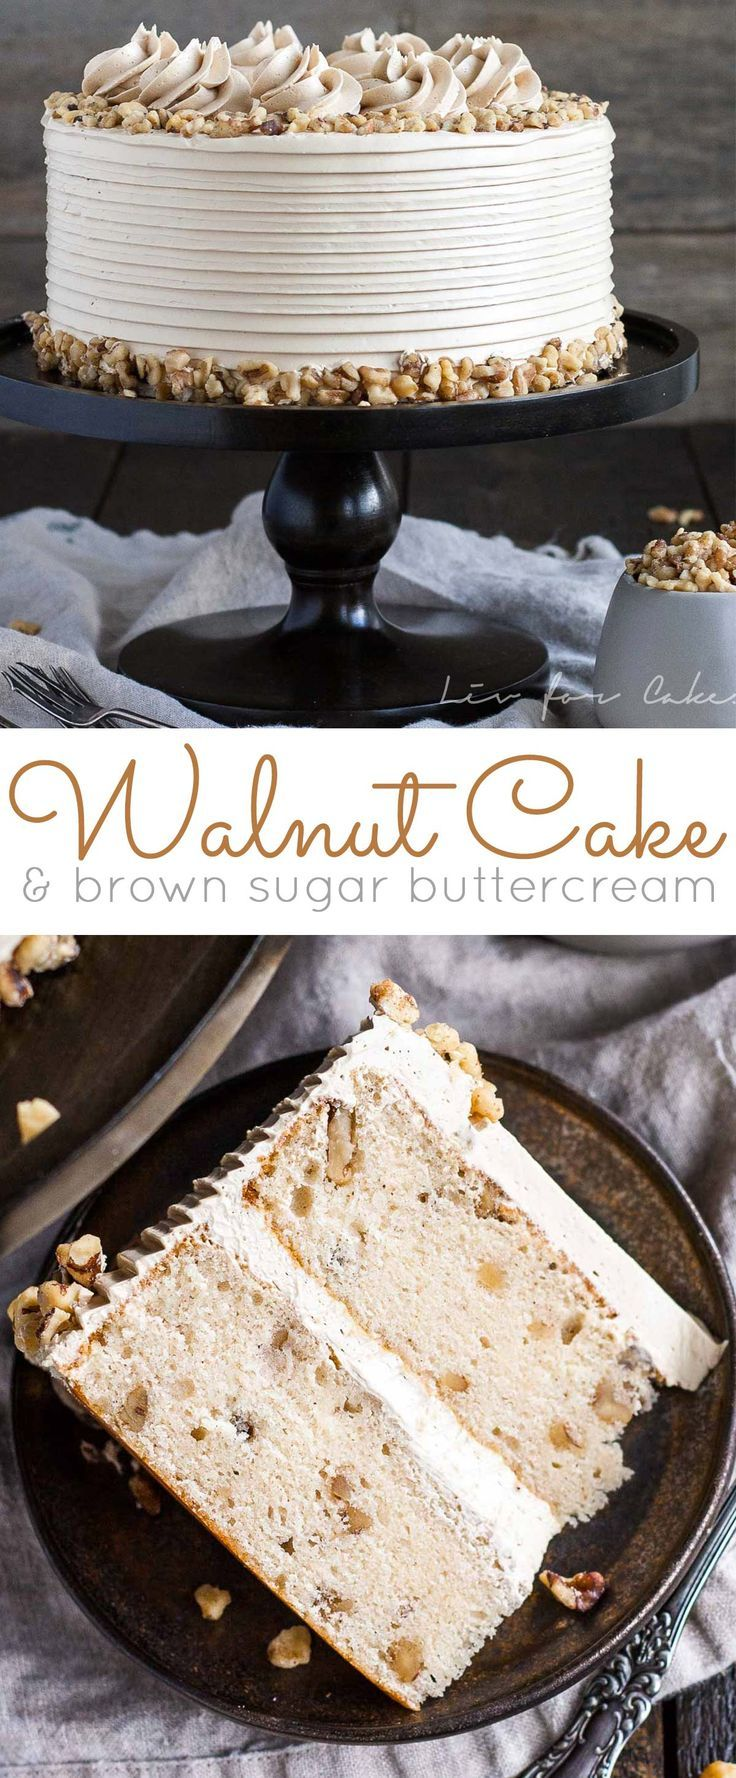 This toasted walnut cake with brown sugar buttercream is the perfect cake for the holidays. | http://livforcake.com